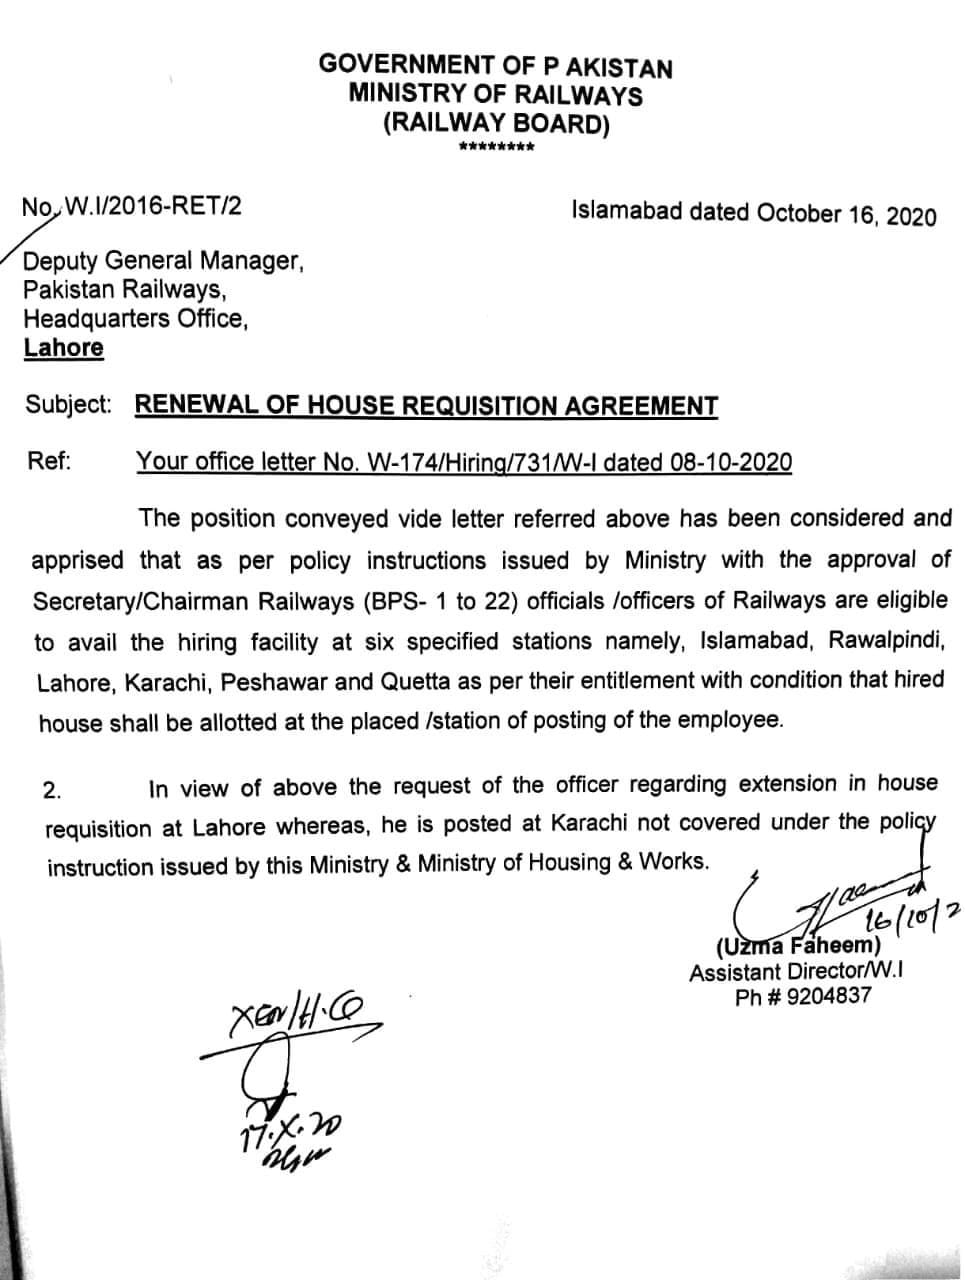 Renewal of House Requisition Agreement